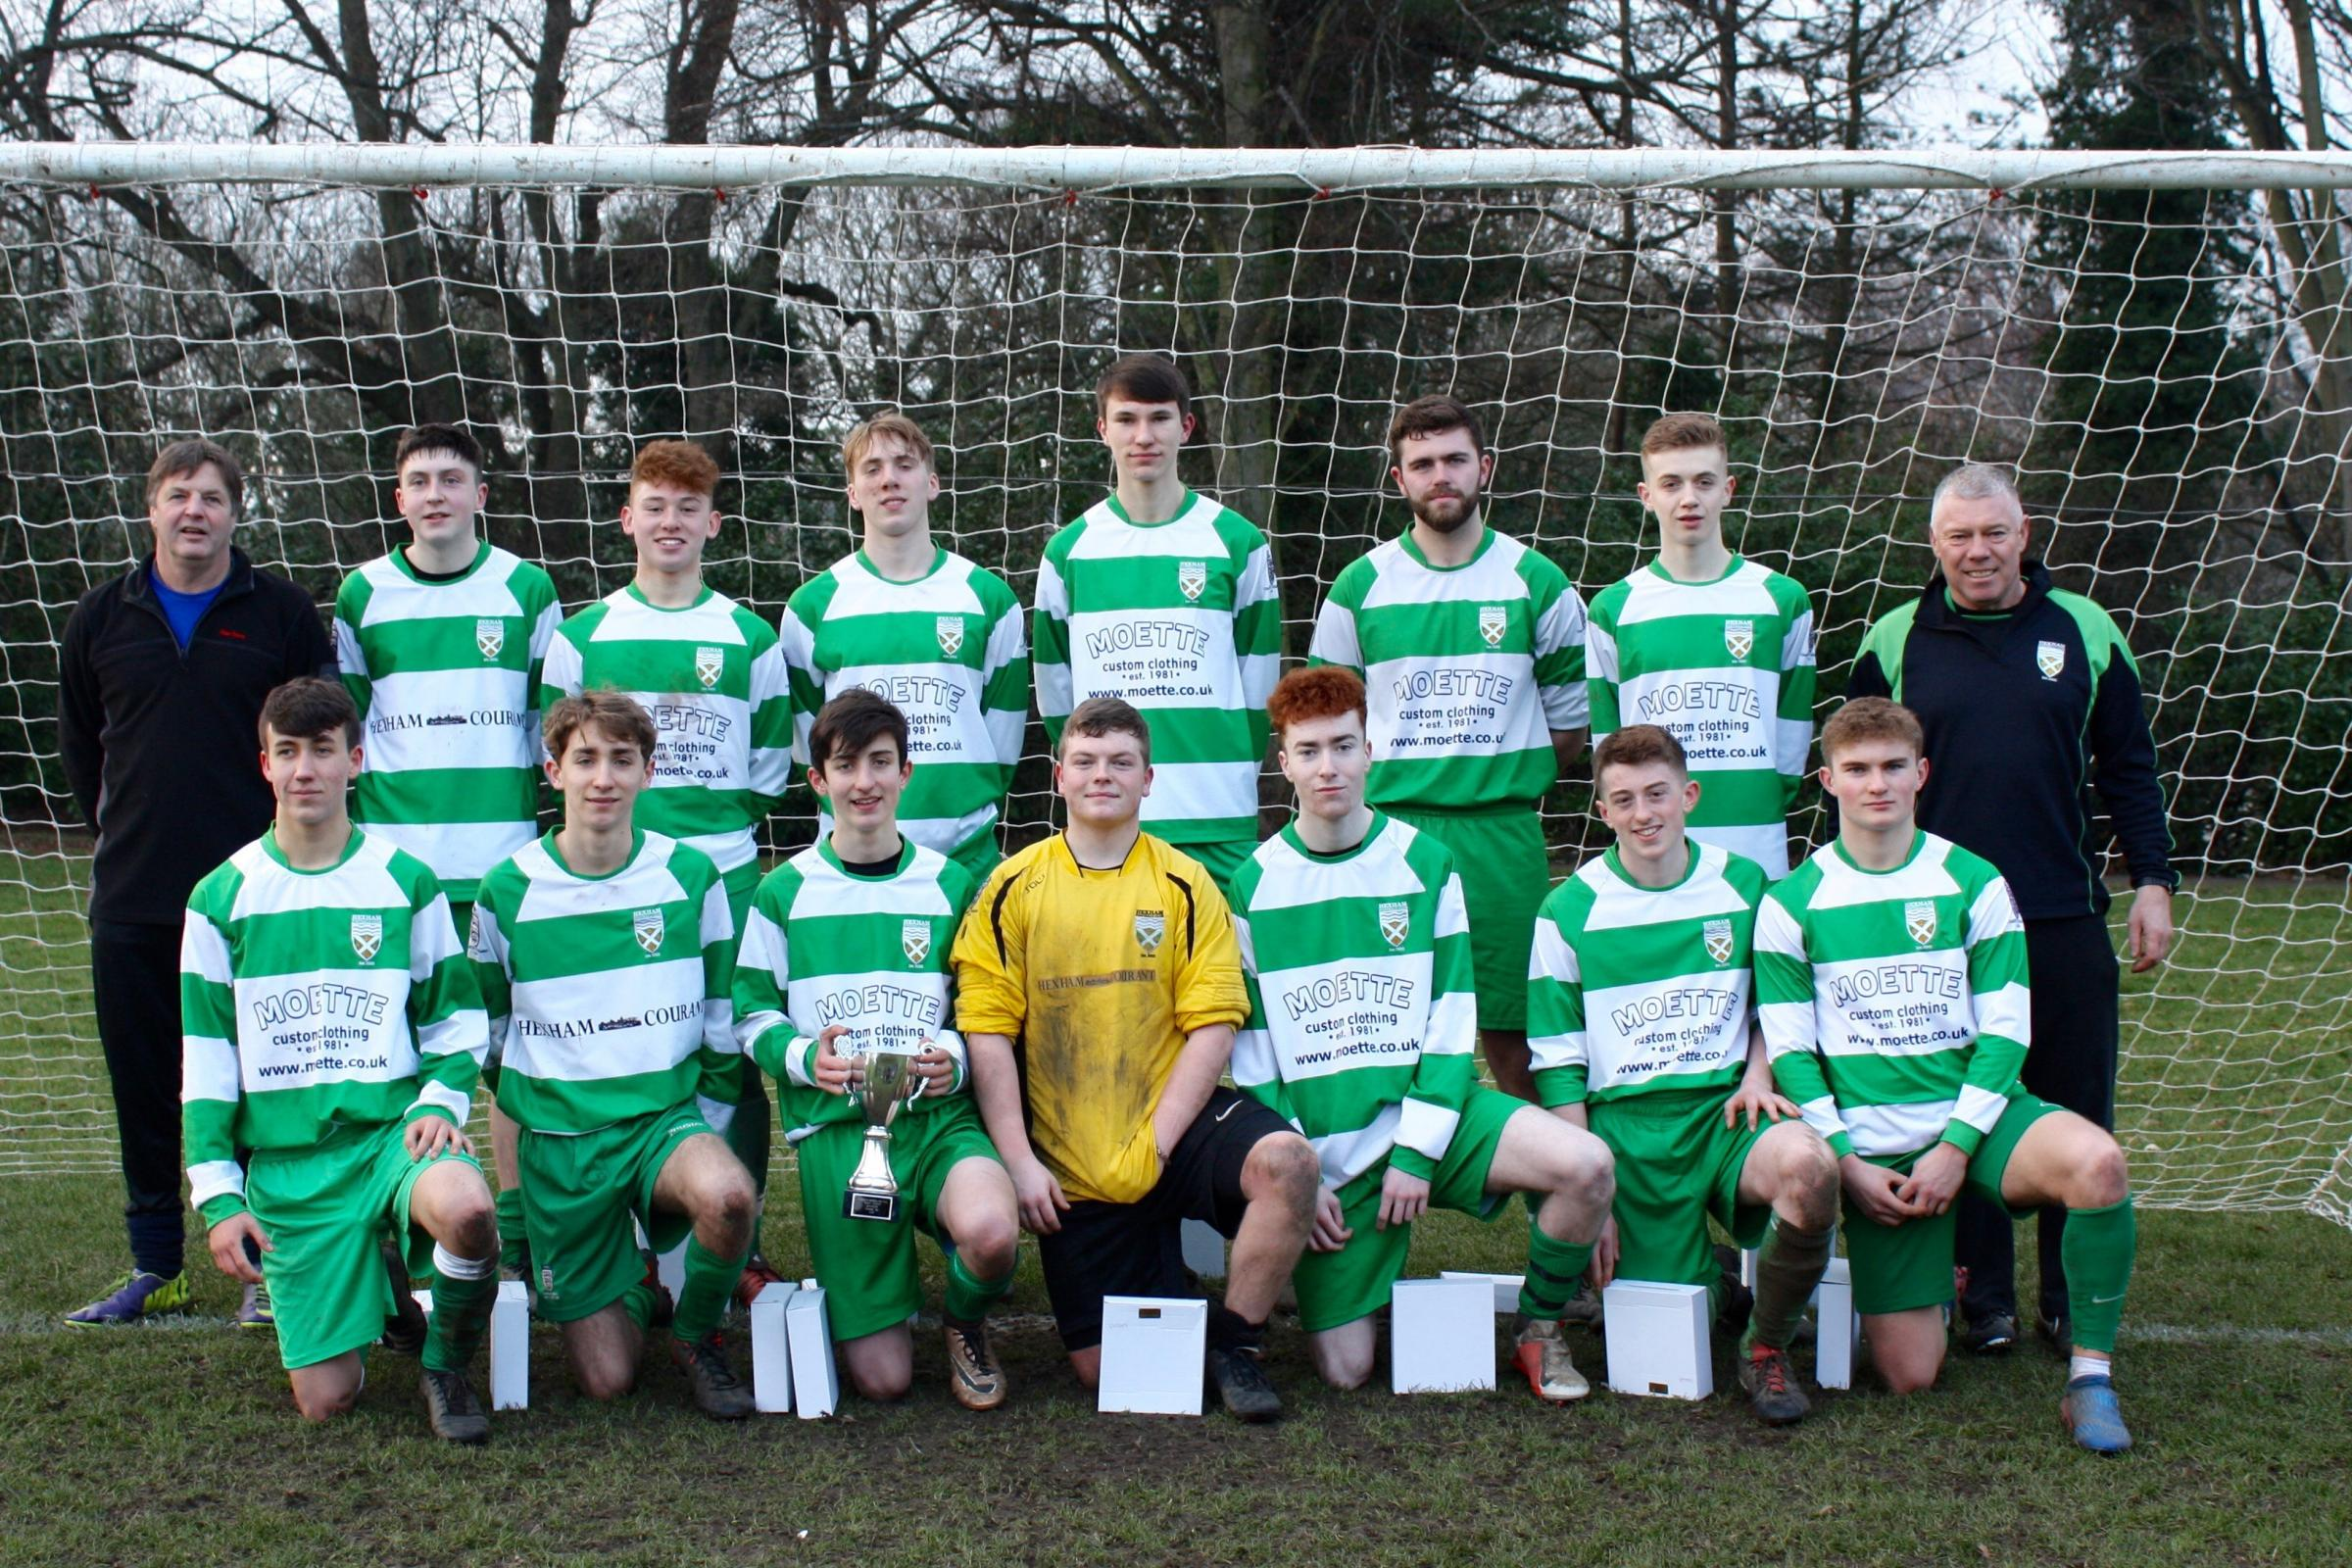 Hexham U18 have lifted silverware during their final season as junior players. They won the West Division Cup after defeating Corbridge 6-3.